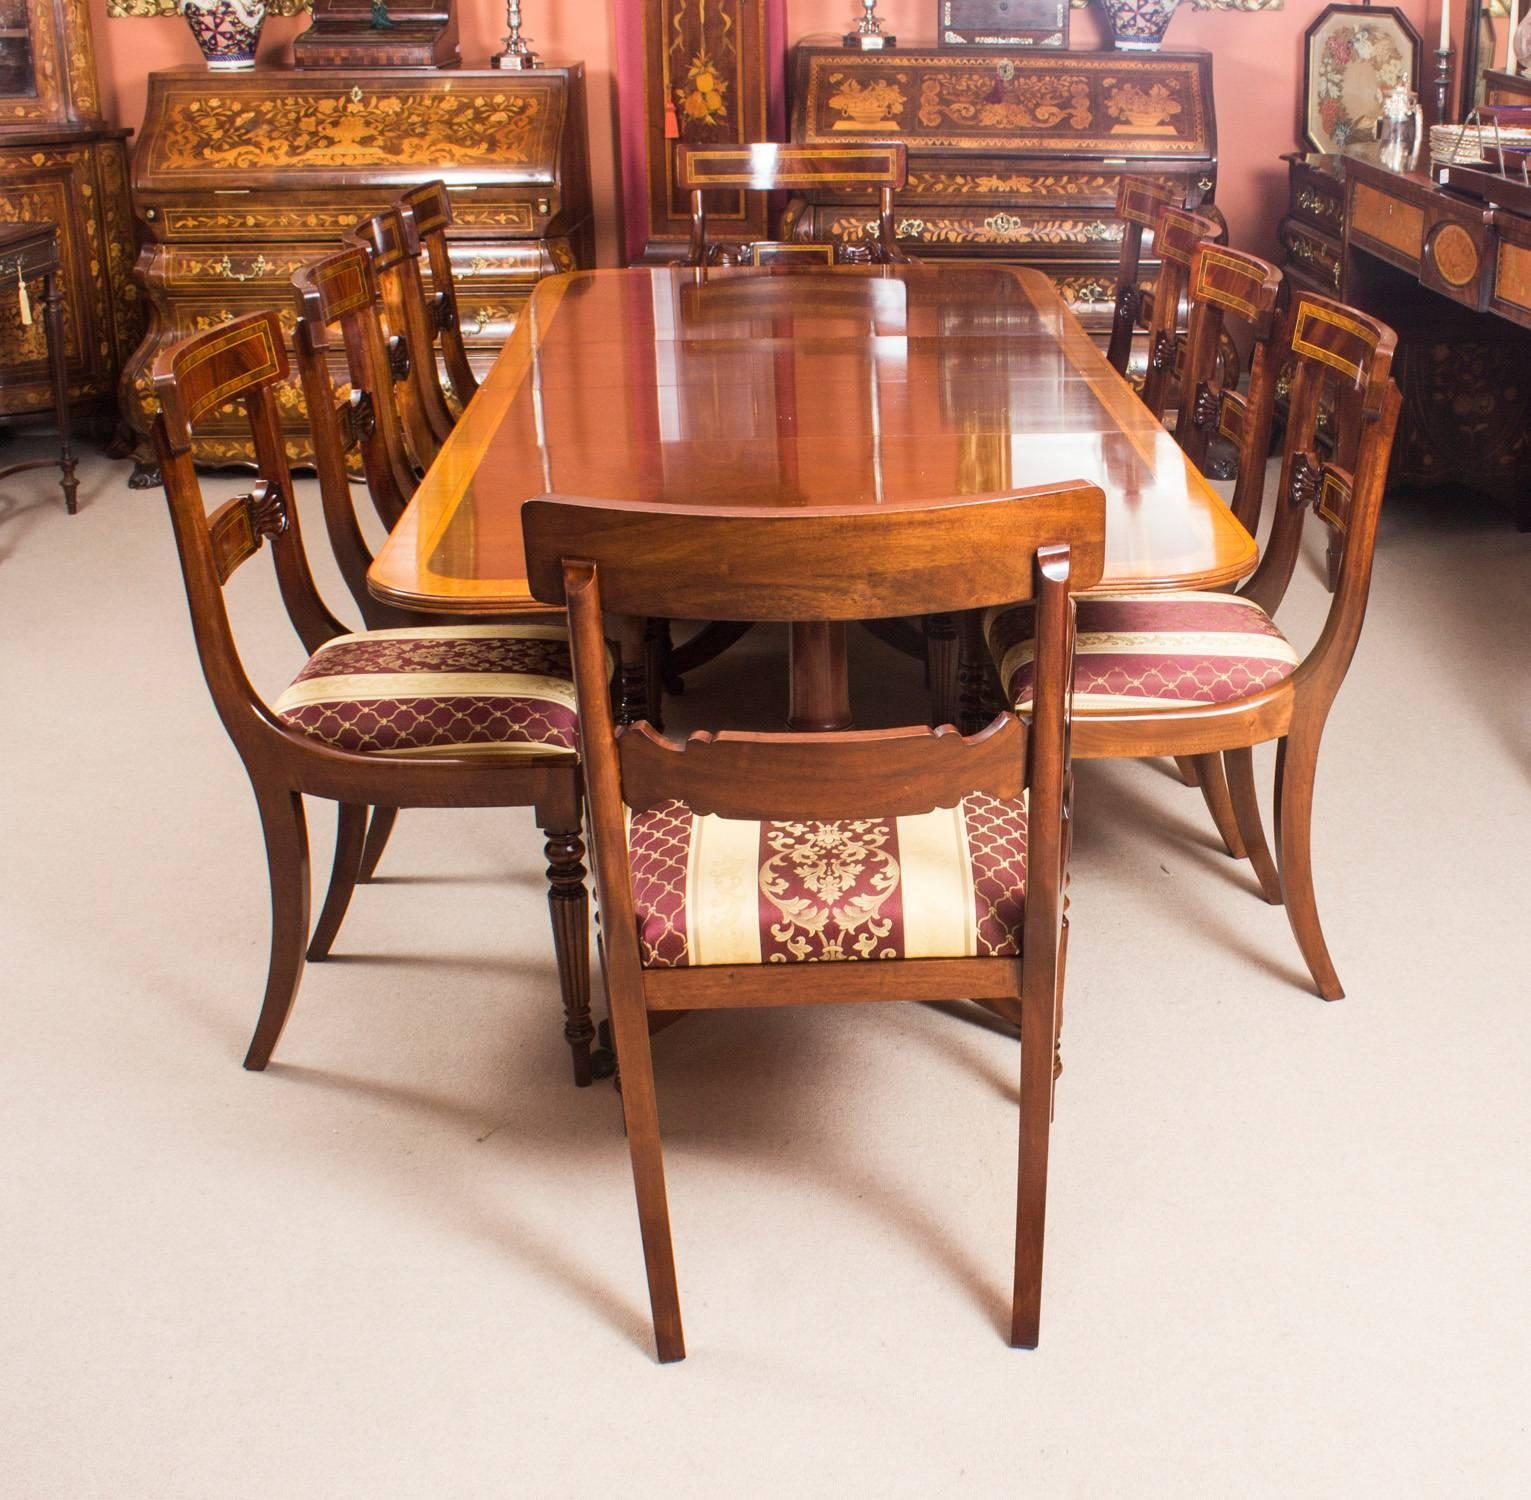 Vintage Dining Table By William Tillman, Harrods And Ten Chairs